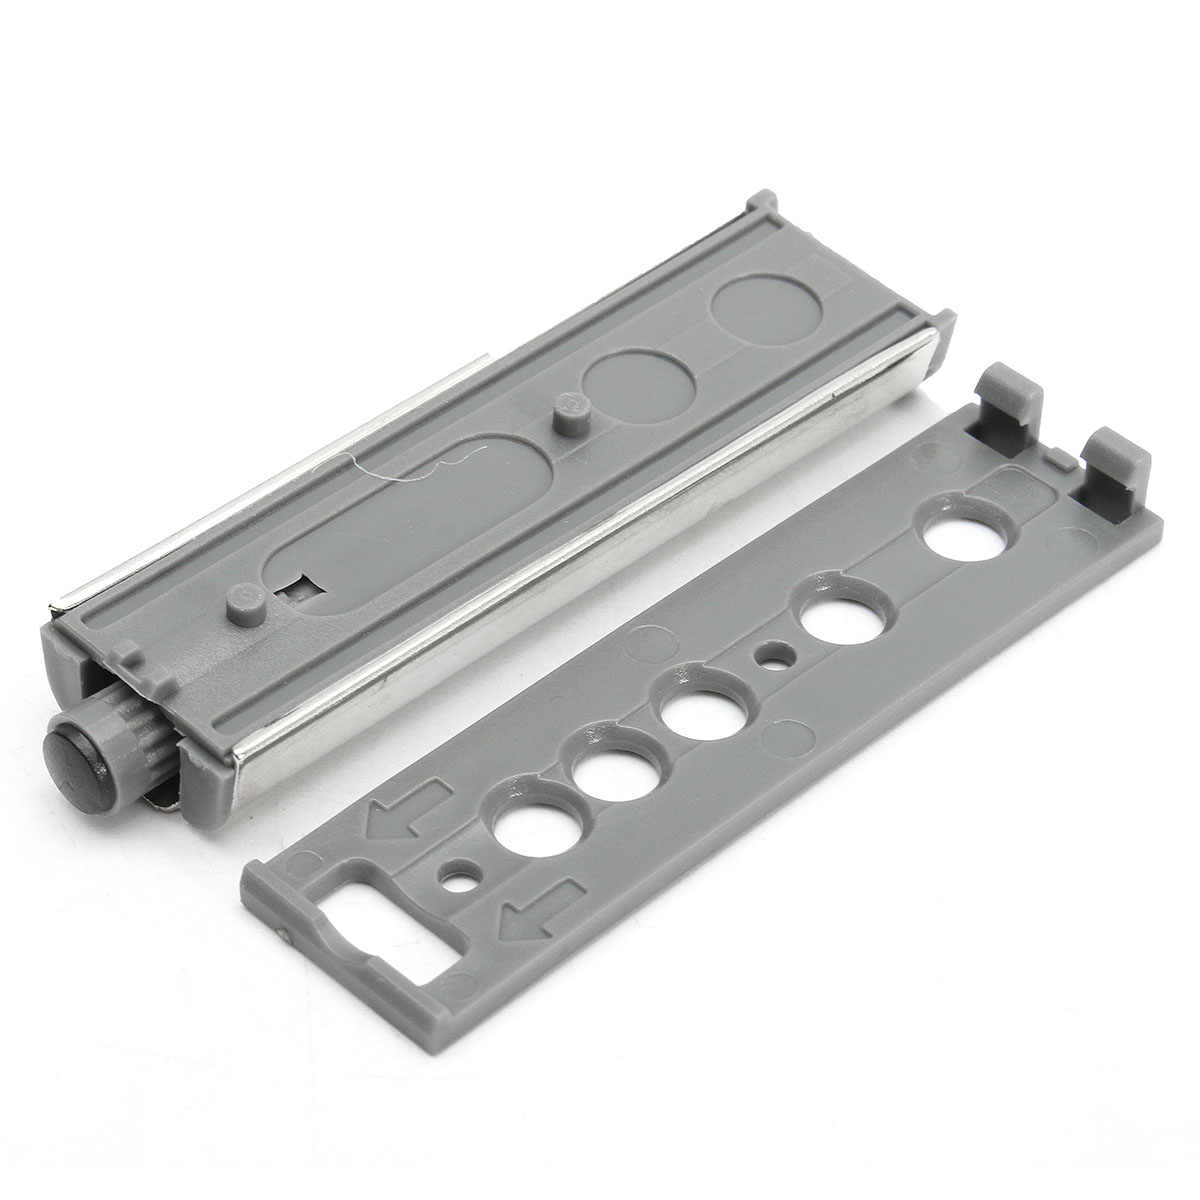 10Pcs Door Stopper Cabinet Catches Push to Open System Touchs Damper Buffer Soft Quiet Closer Furniture Hardware